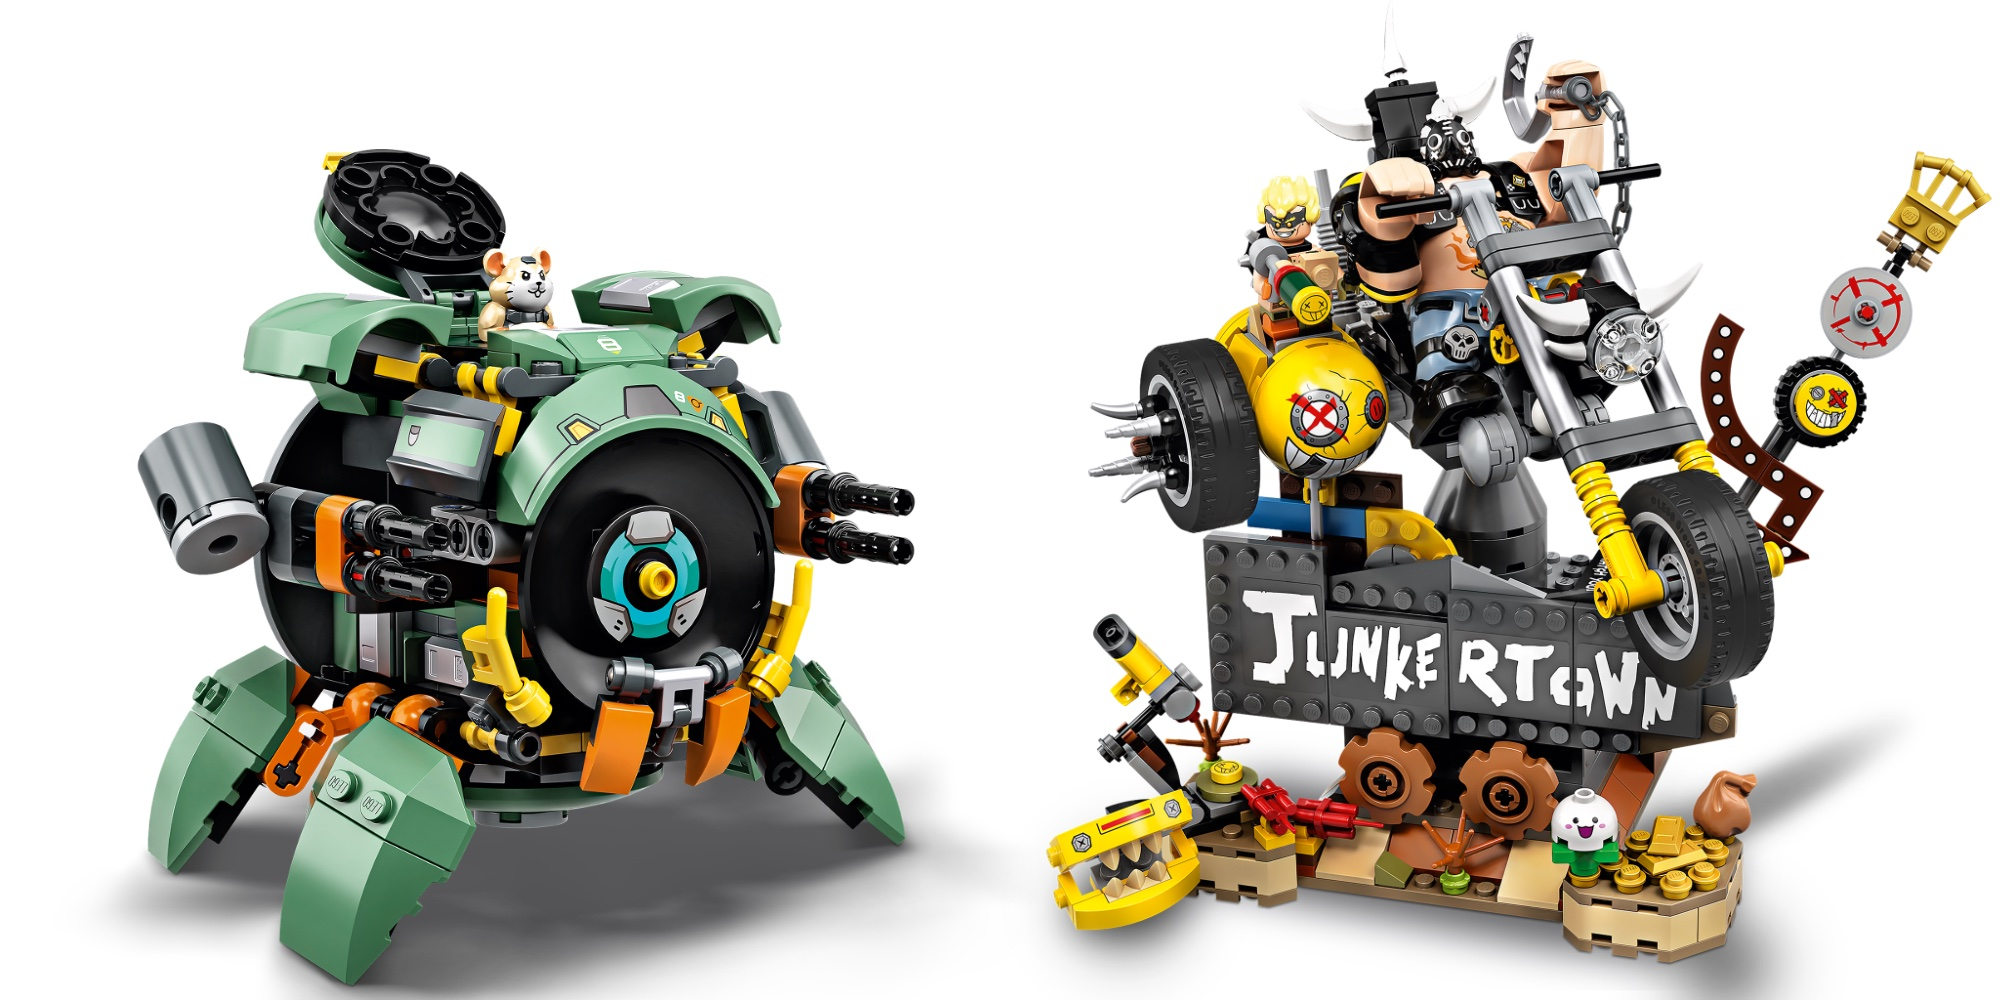 Up to date | Check Out This Hot New Lego Overwatch Trash